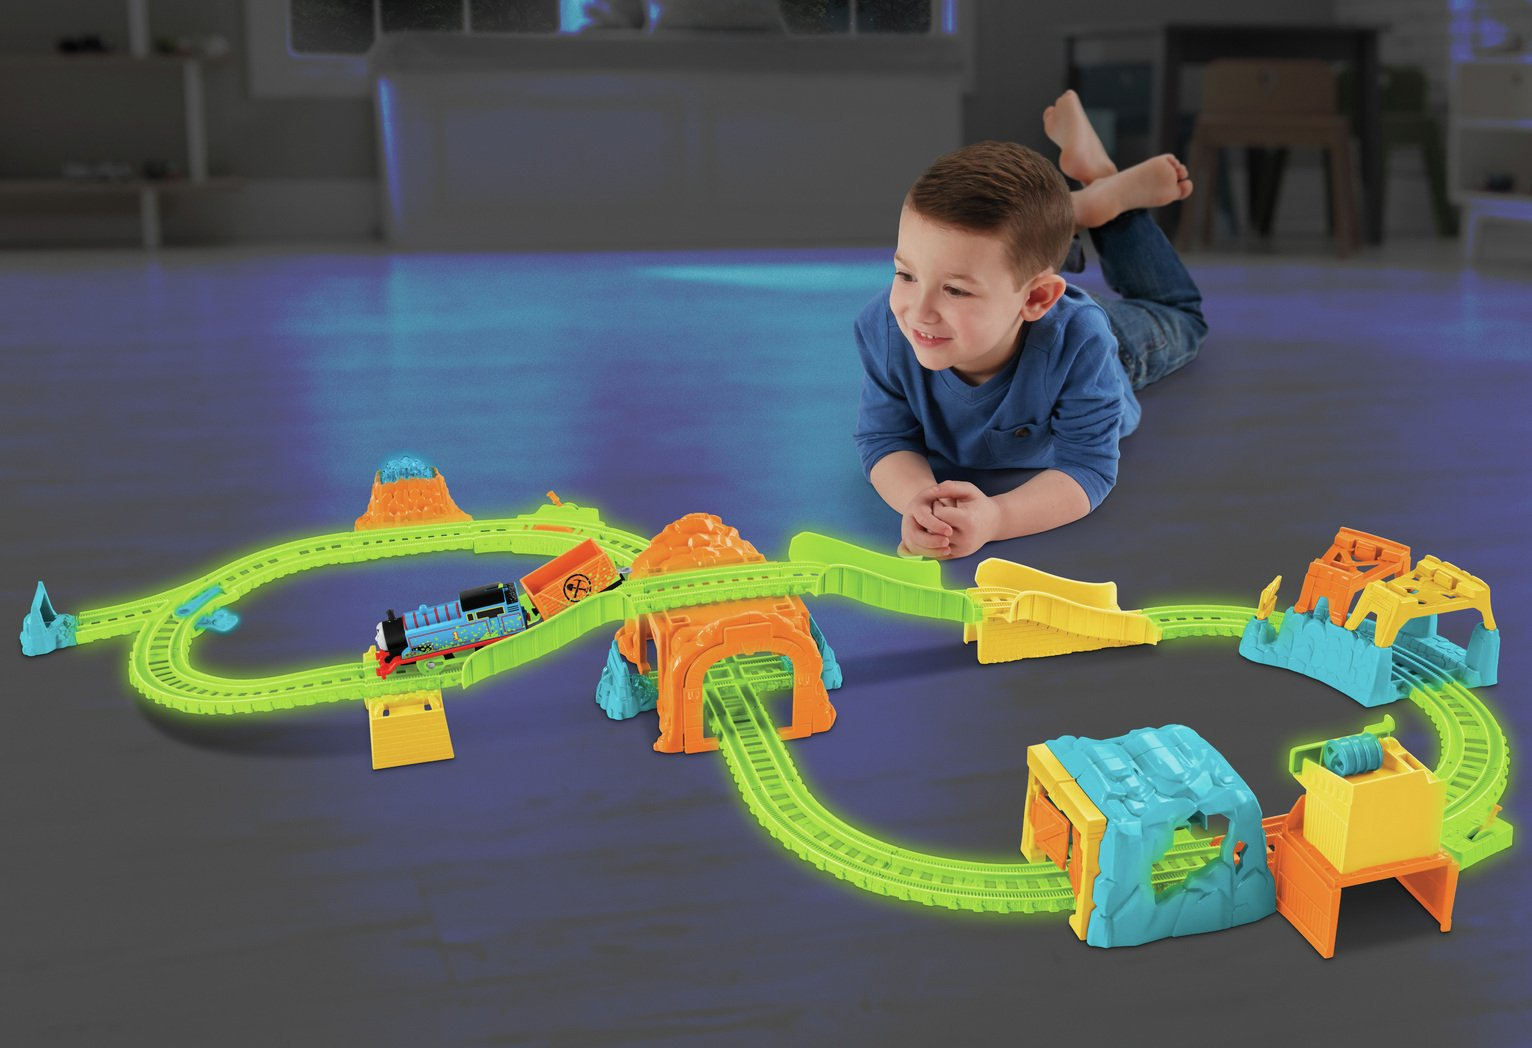 Thomas & Friends Glow Glowing Mine Playset